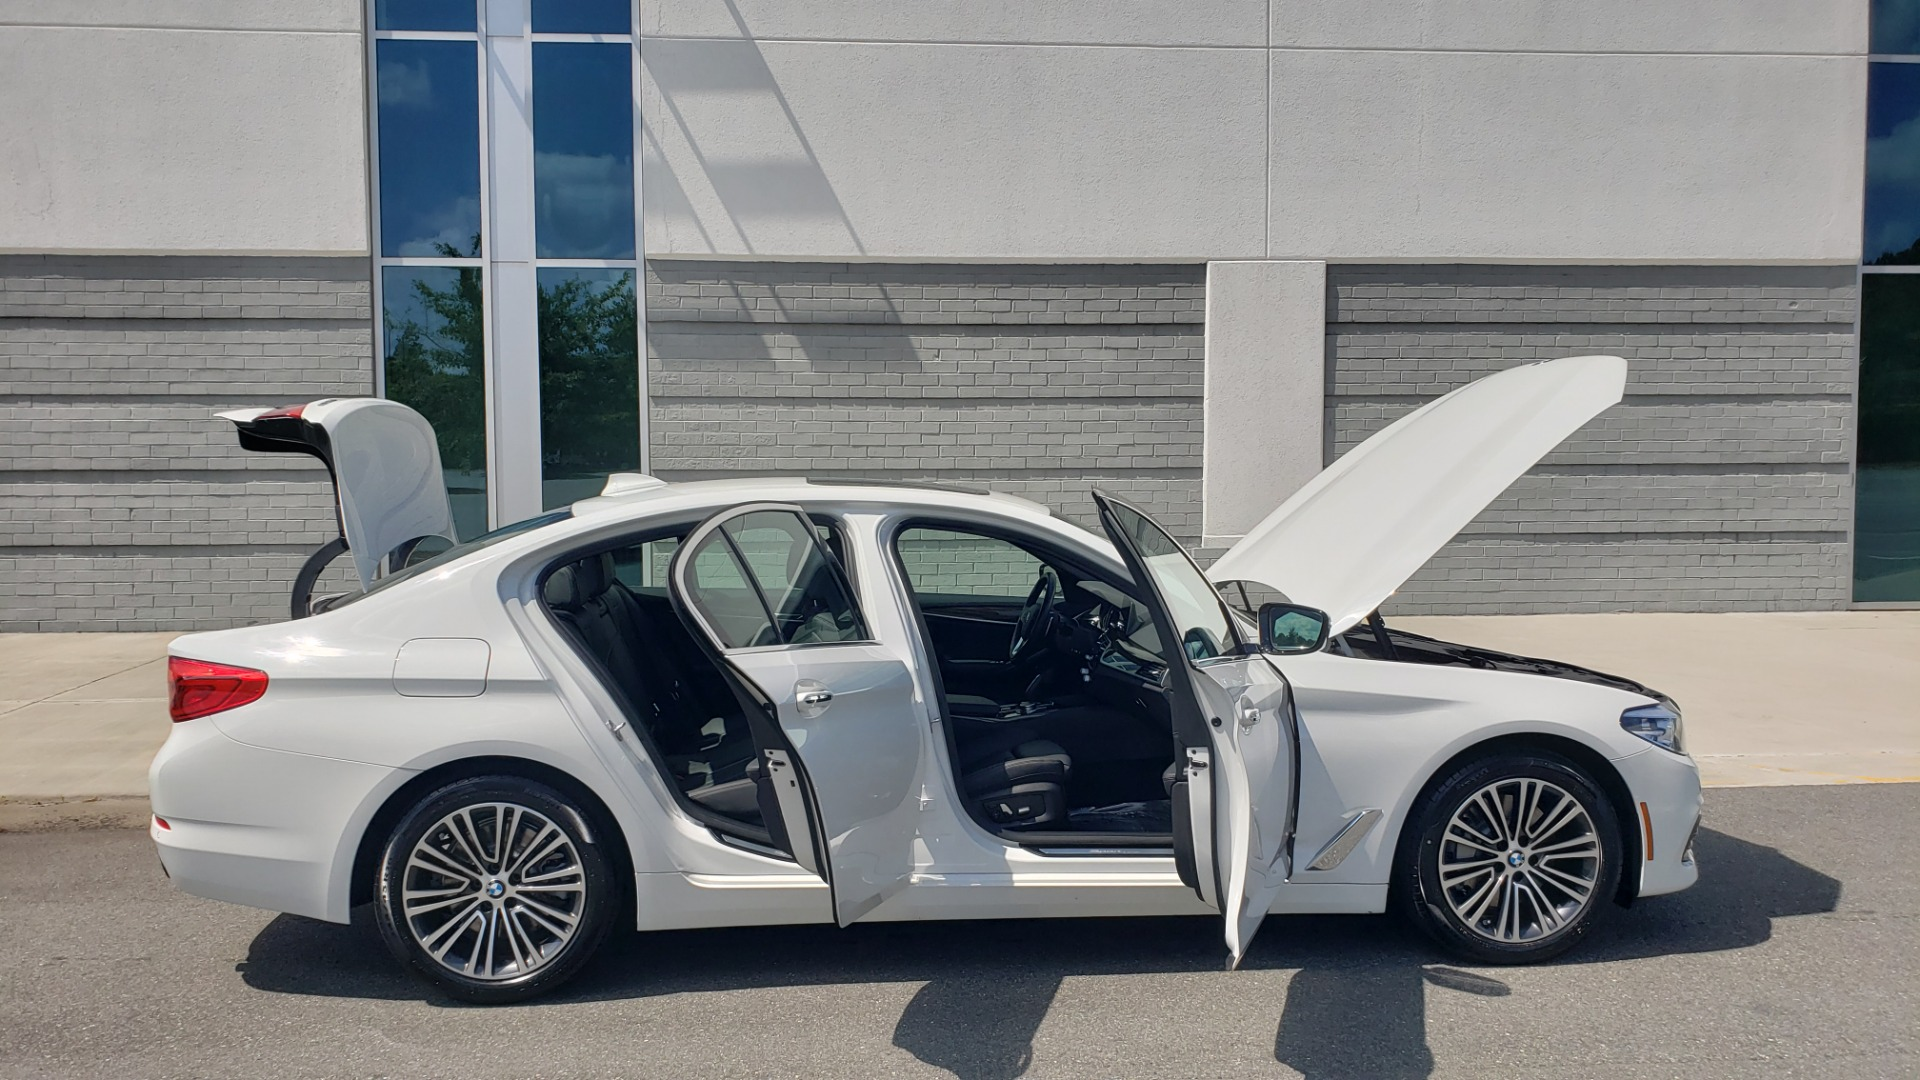 Used 2018 BMW 5 SERIES 530I XDRIVE PREMIUM / PARK ASST / NAV / SUNROOF / REARIEW for sale $37,795 at Formula Imports in Charlotte NC 28227 12